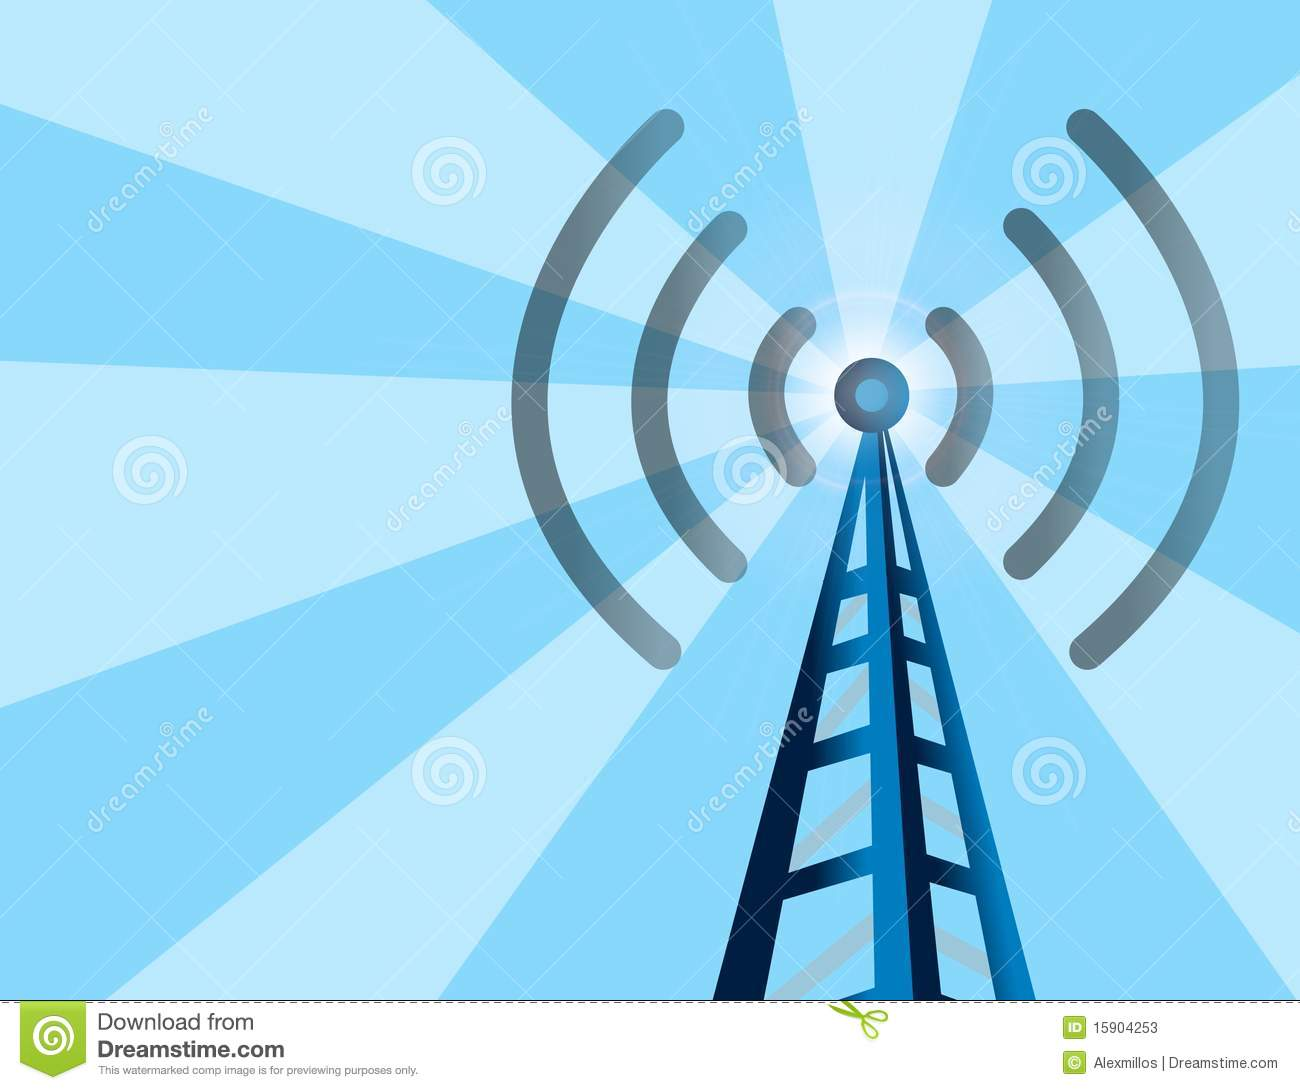 Wireless Tower Background Stock Vector. Illustration Of